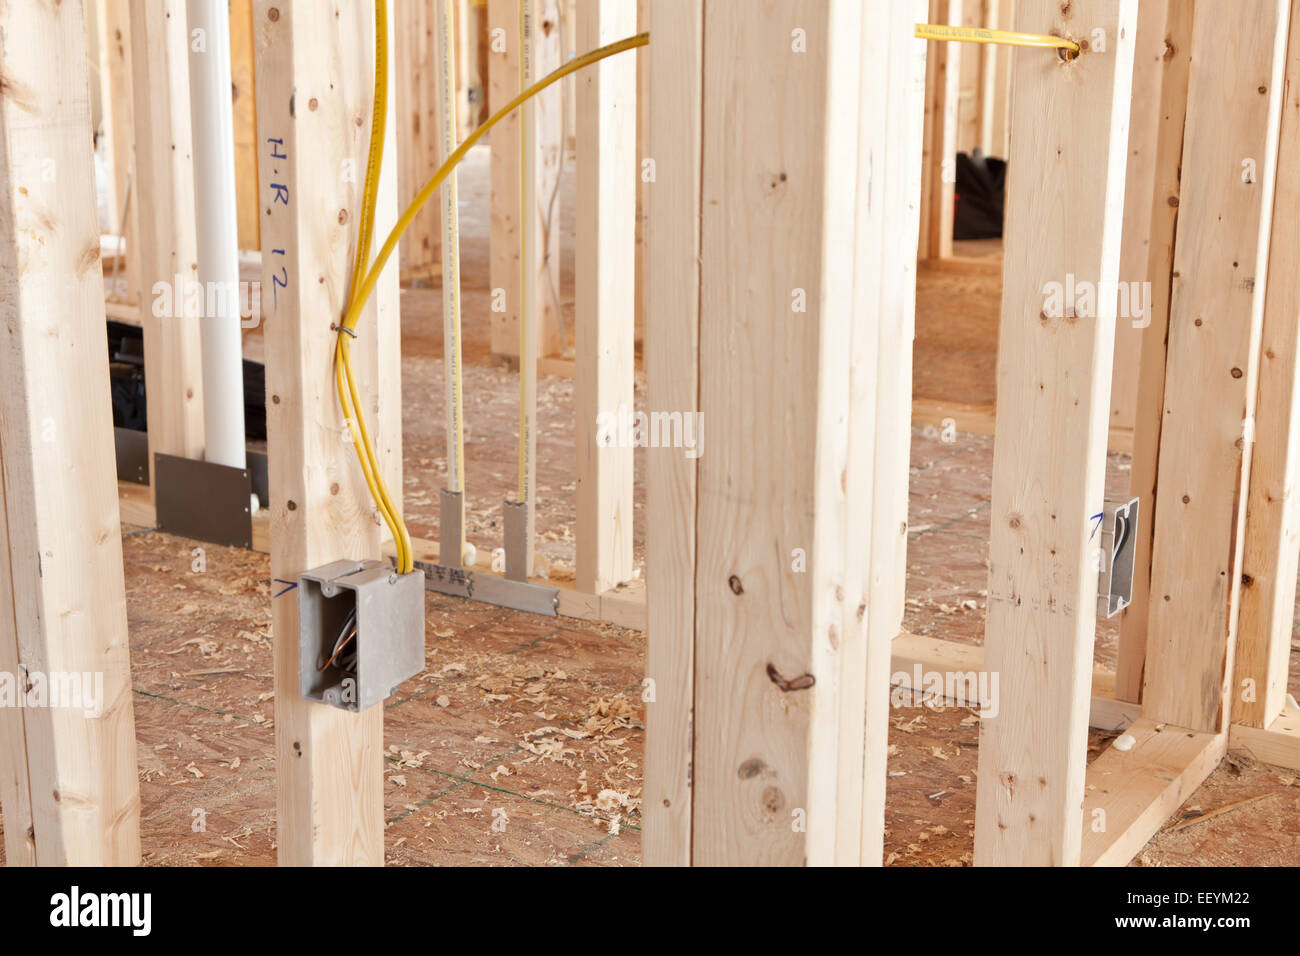 Electrical wiring to a receptacle box in a new home under construction -  Stock Image